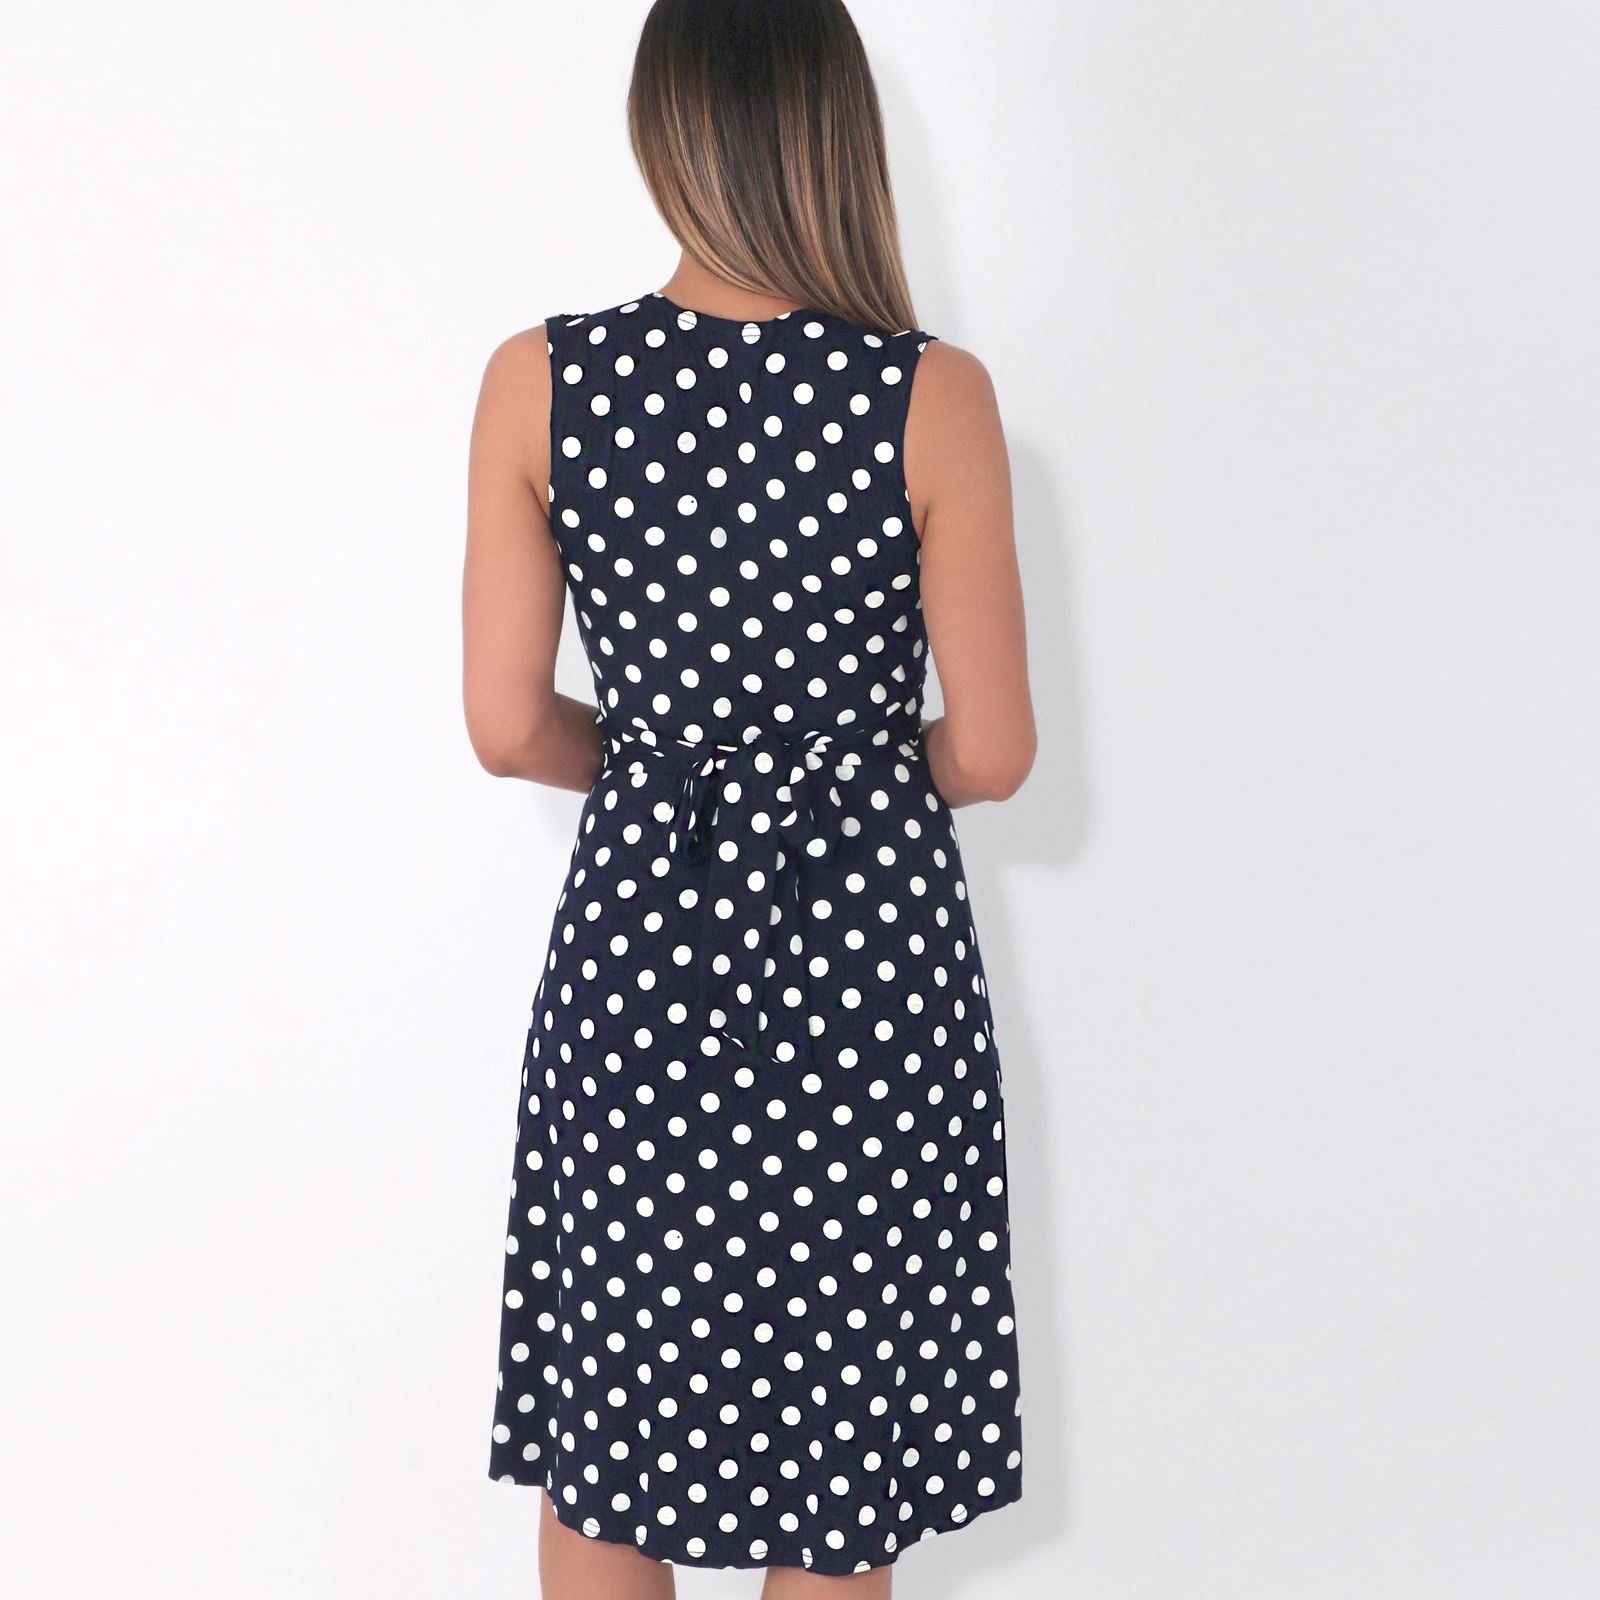 Womens-Polka-Dot-Retro-Dress-Pleated-Skirt-Wrap-Mini-V-Neck-Top-Swing-Party thumbnail 28